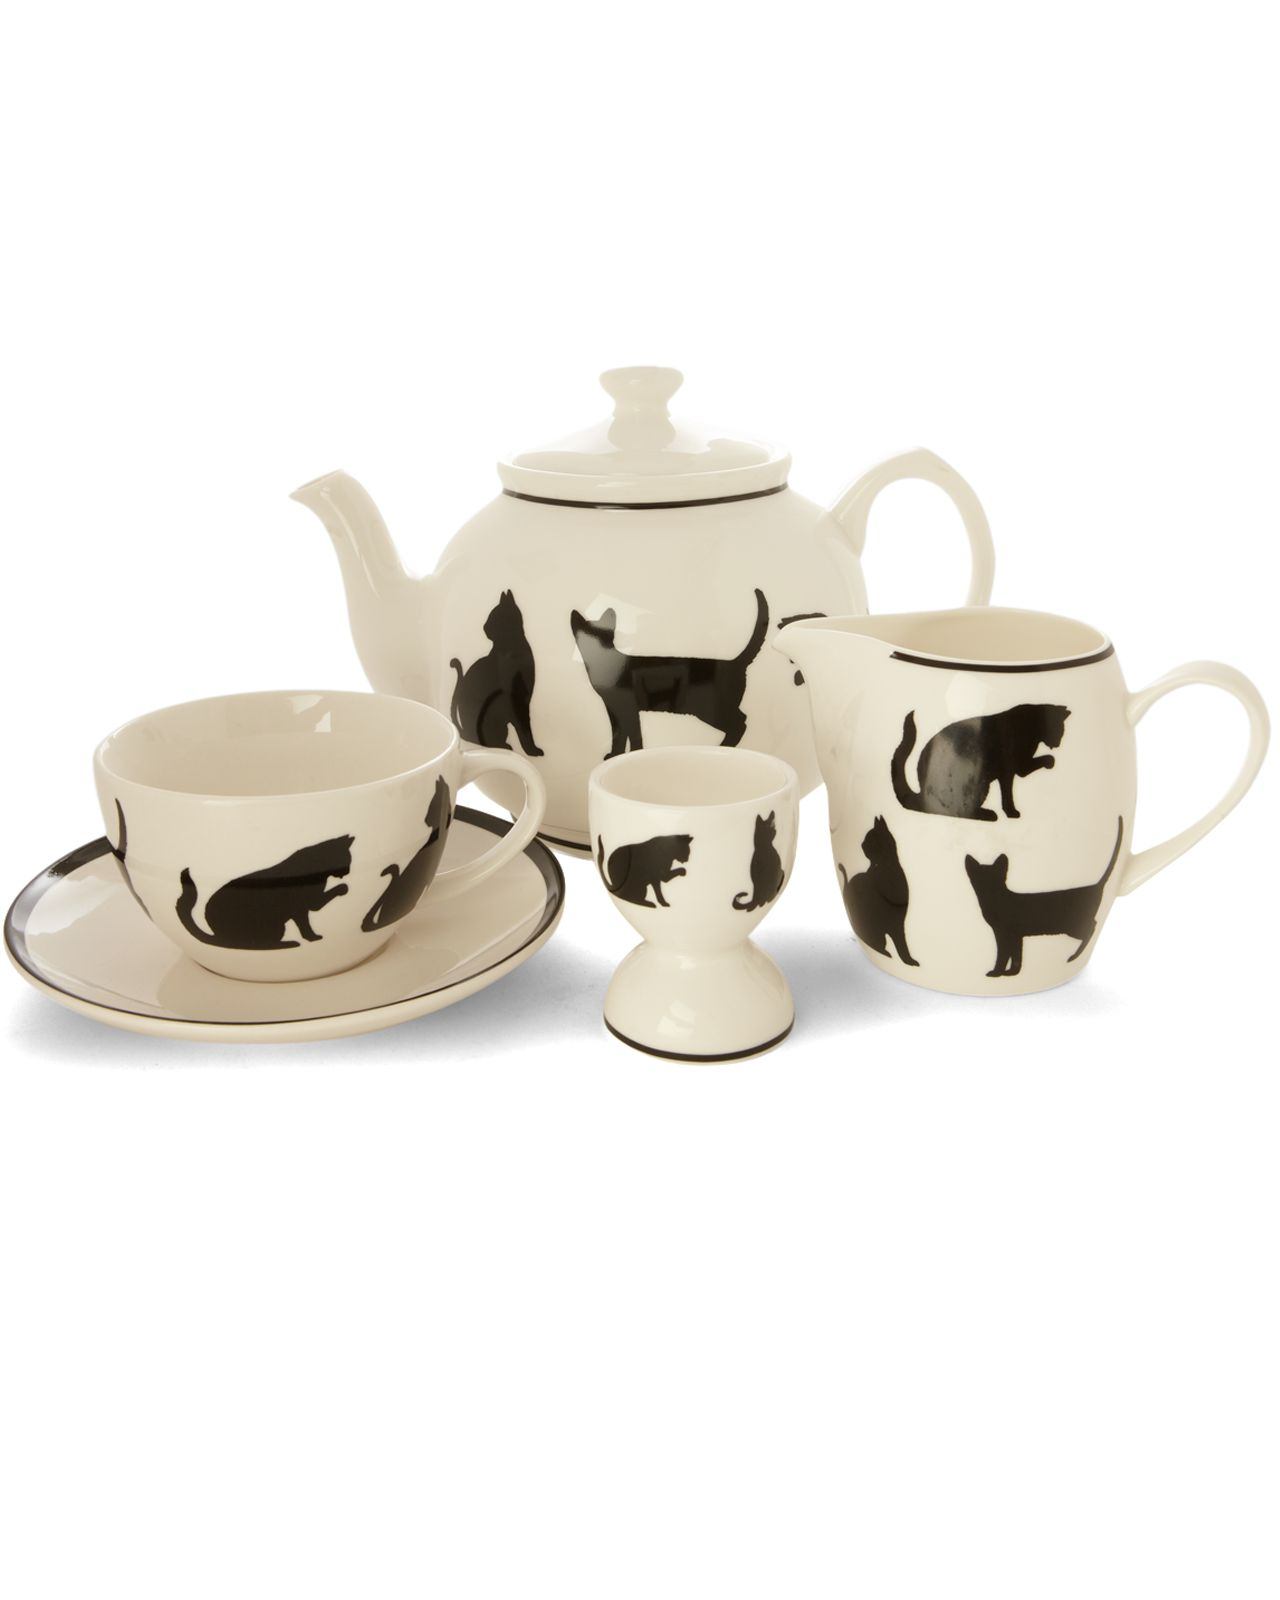 Silhouette cat tea range